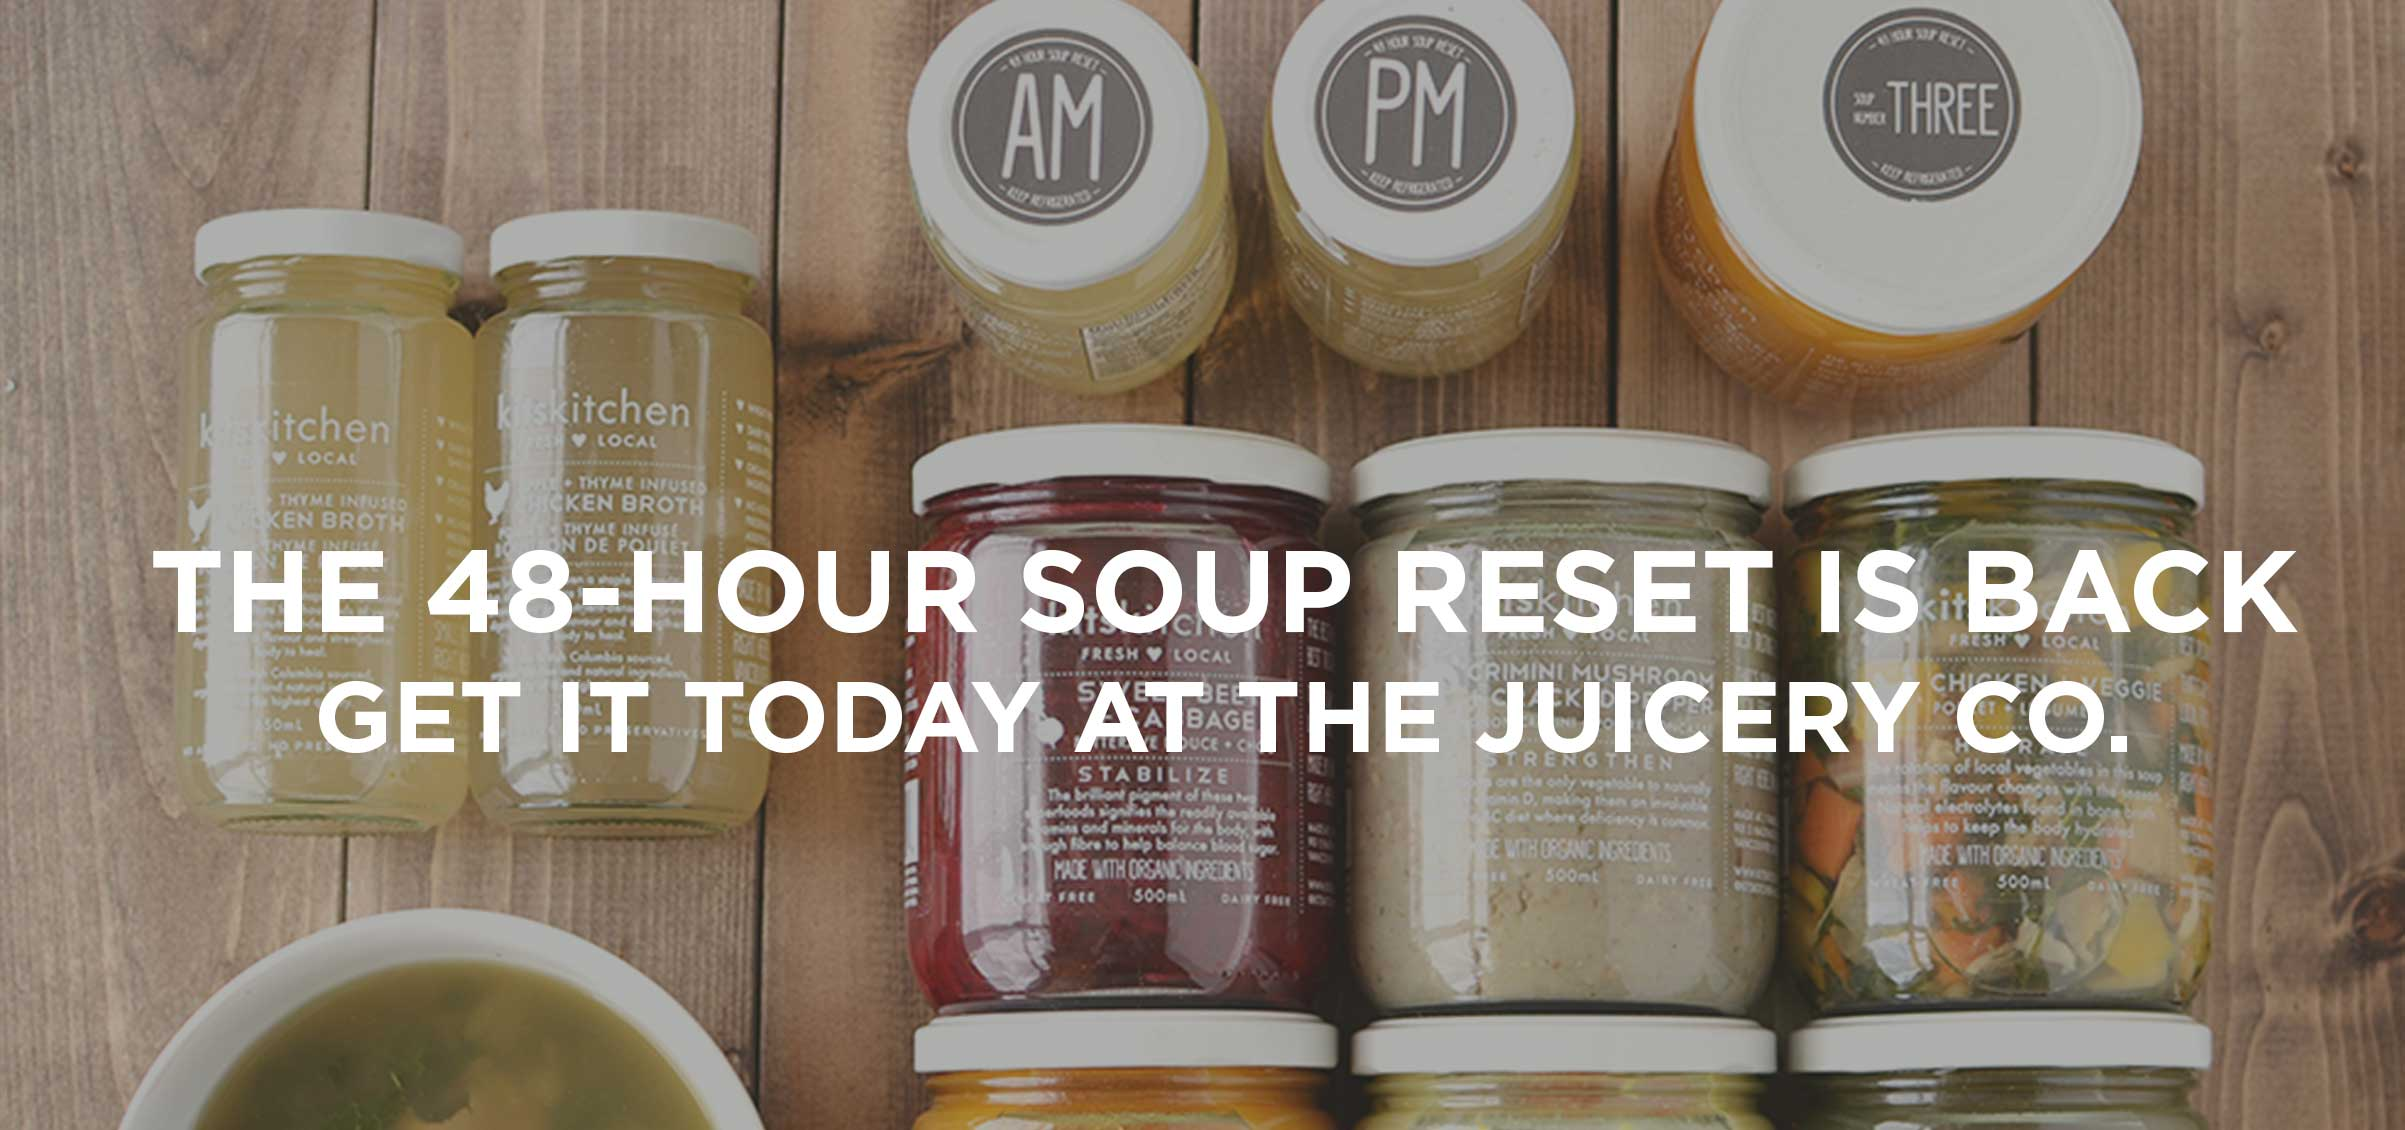 kitskitchen 48 Hour Soup Reset Now Back at the Juicery Co